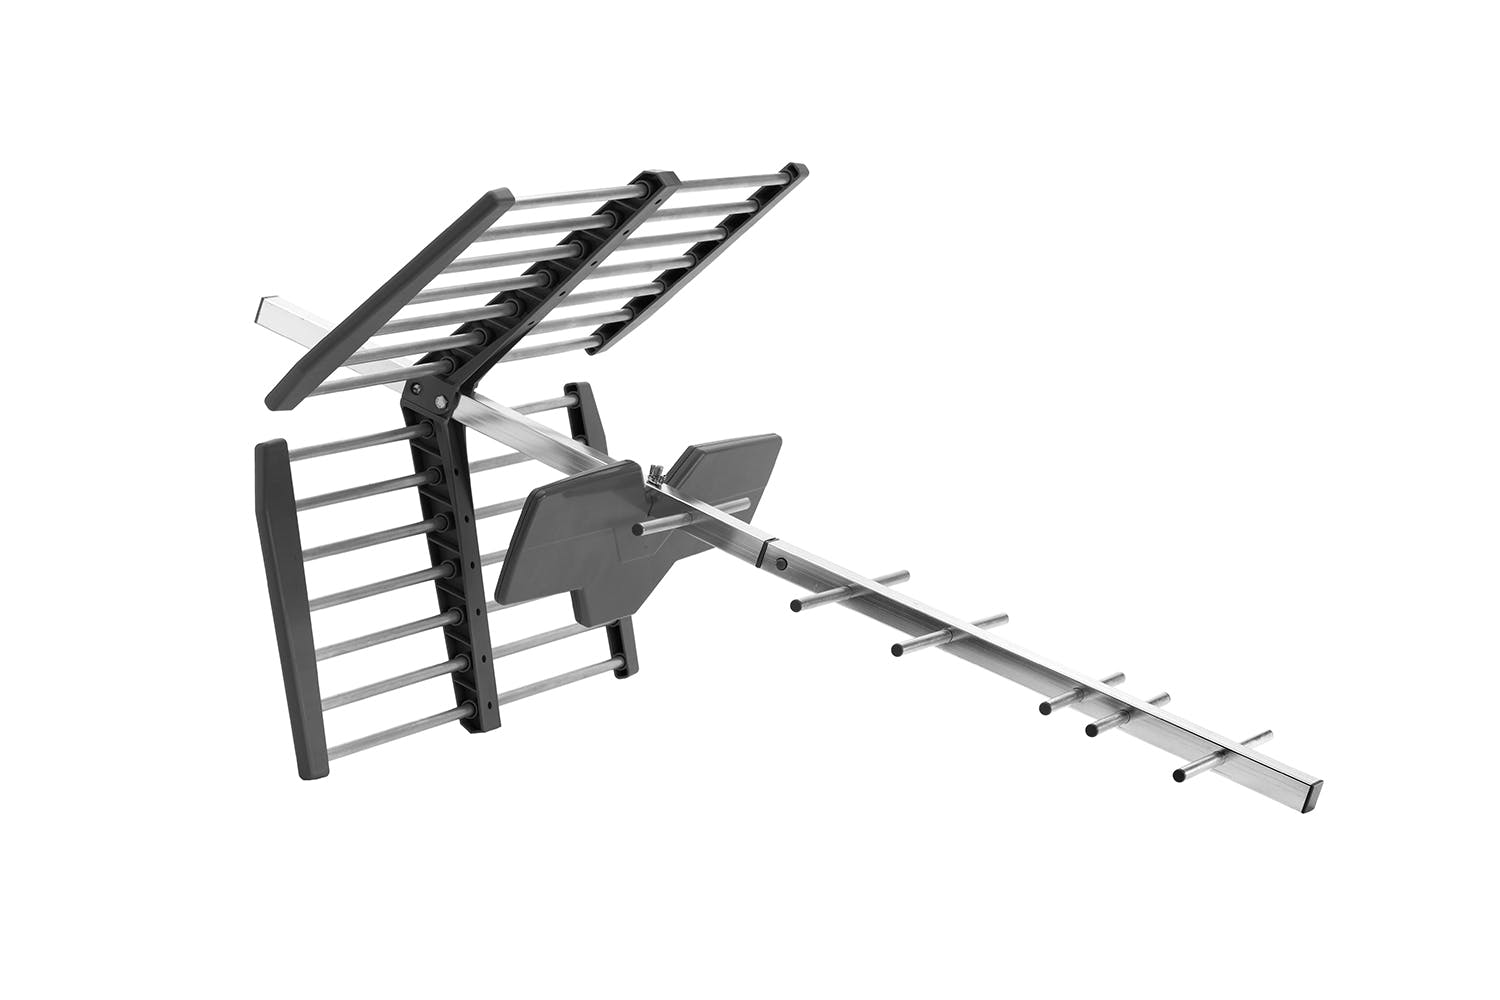 One For All Amplified Outdoor Yagi Antenna | SV9453